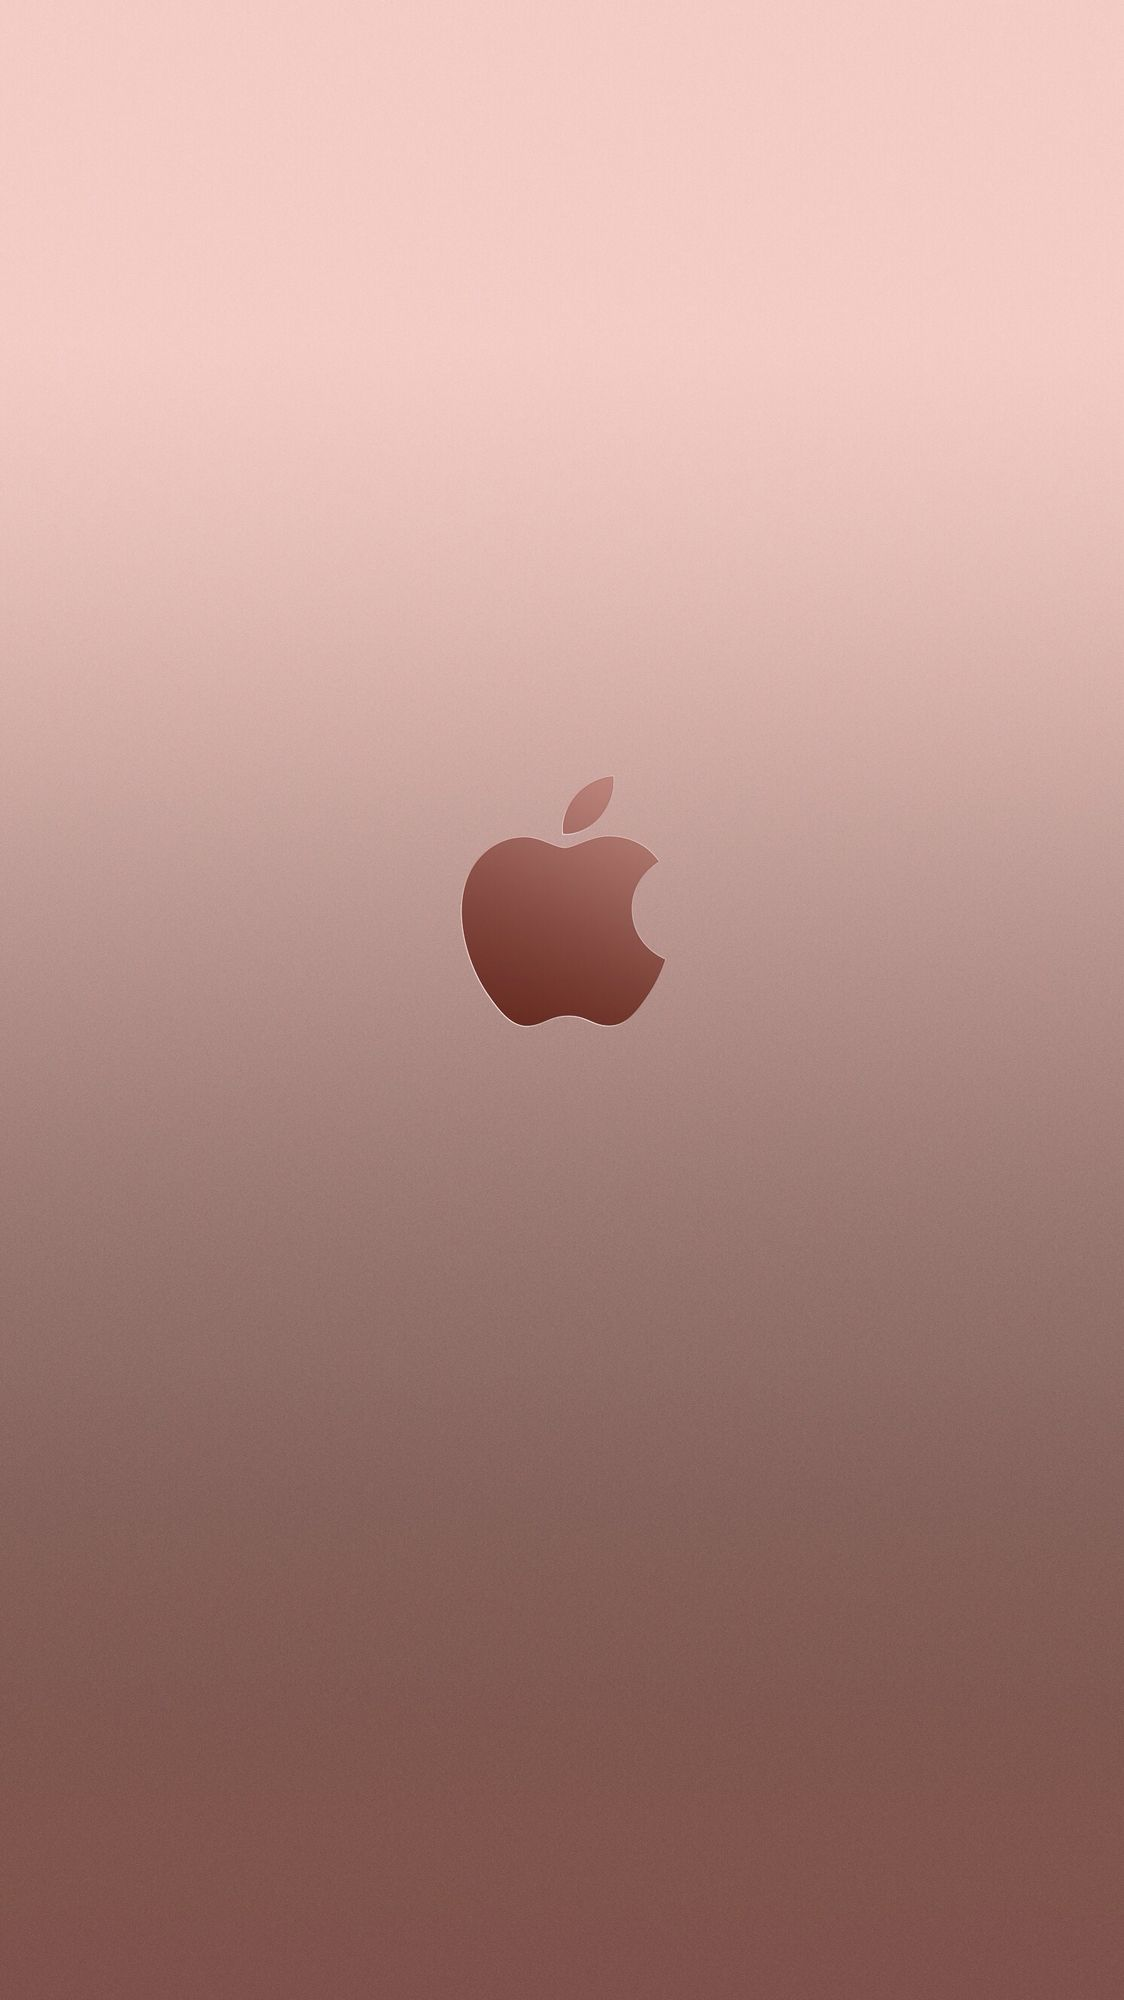 Iphone 6s Plus Rose Gold Wallpapers Wallpaper Iphone Abstrak Ilustrasi